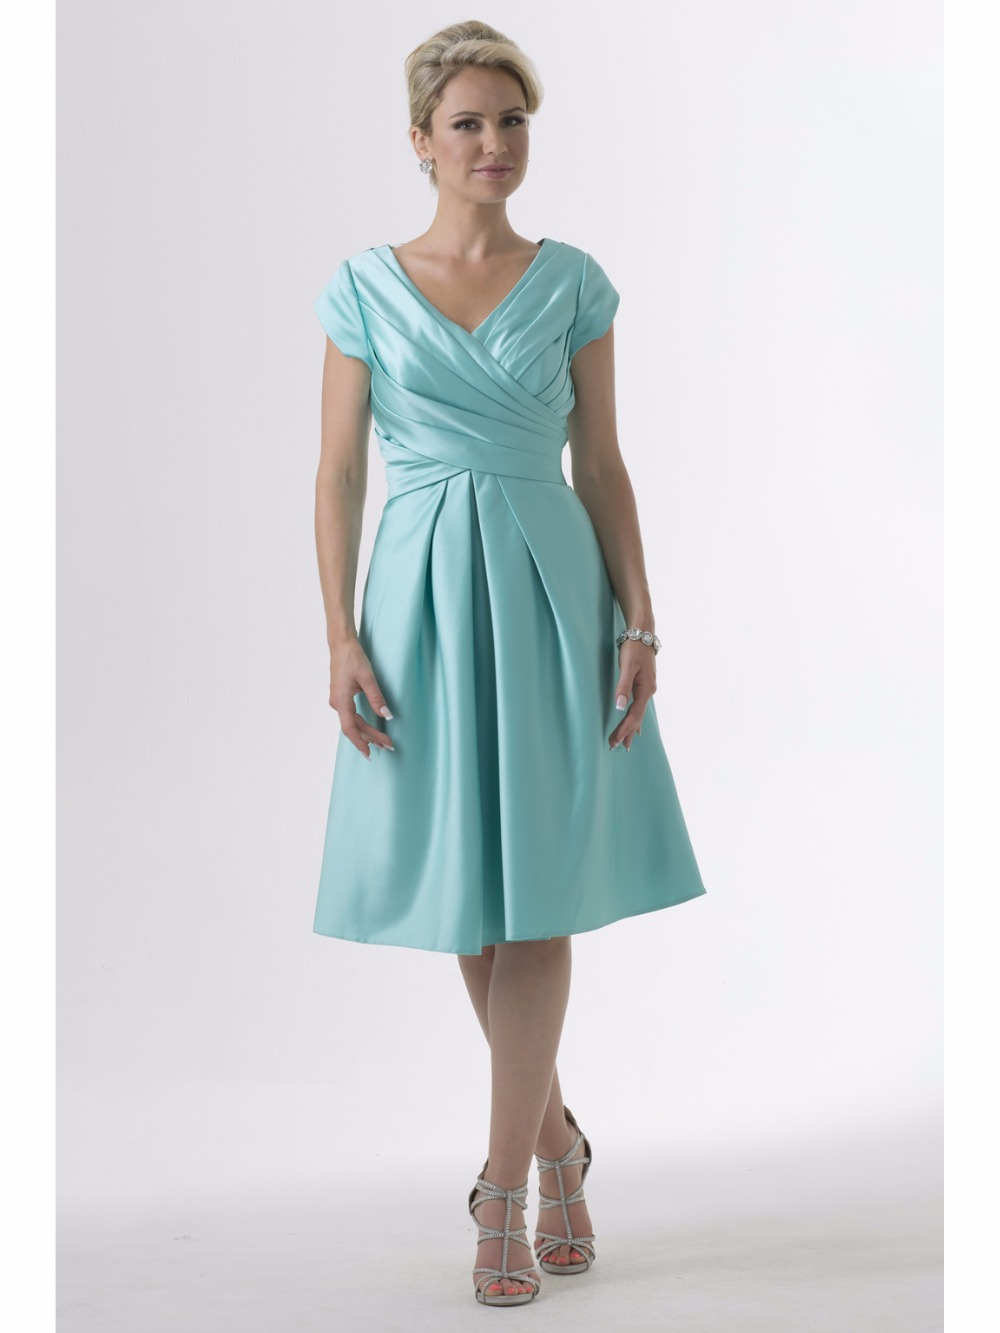 Mint Satin Short Modest Bridesmaid Dresses With Cap Sleeves V Neck A ...